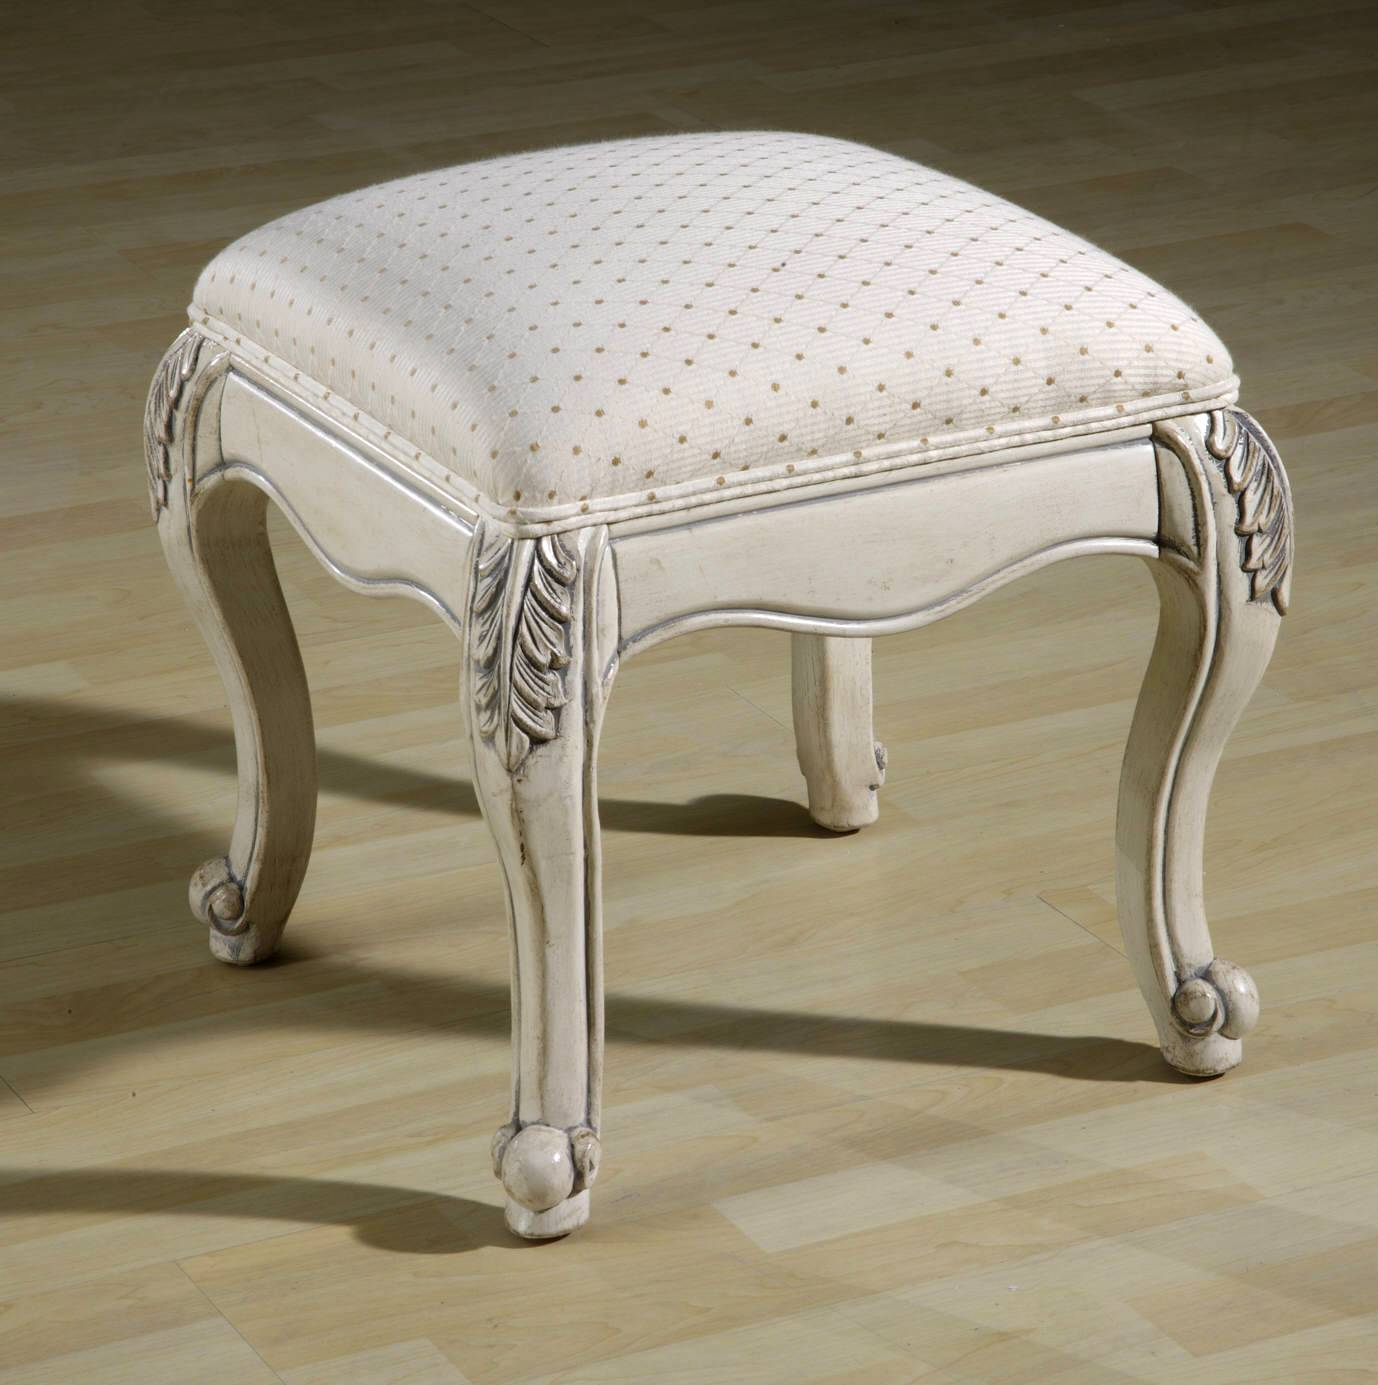 Classic style vanity bench seat with white cushion and crafted wood legs & More Designs of Vanity Bench Seat for Bedroom Vanity | HomesFeed islam-shia.org